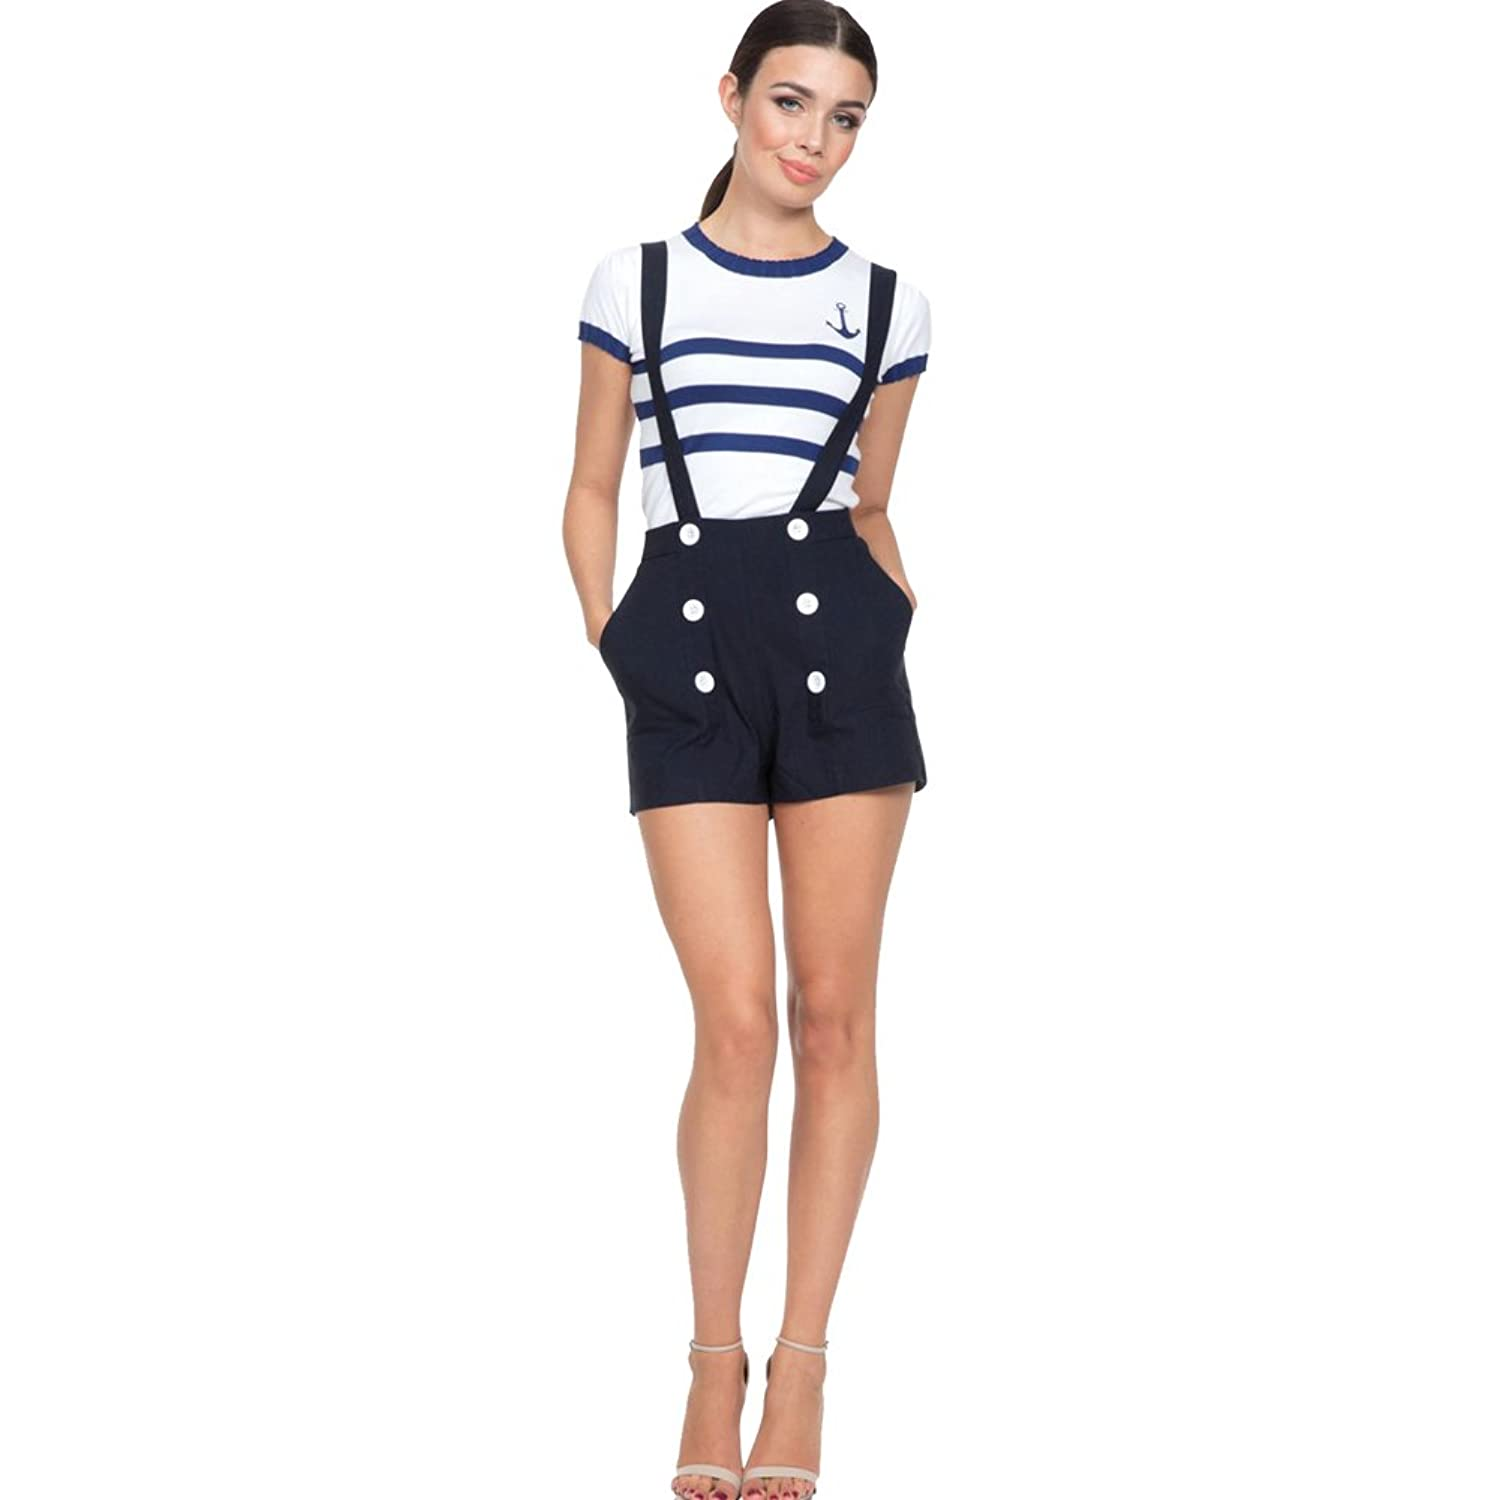 1950s Shorts History Womens Voodoo Vixen DAISY Nautical Shorts Navy $48.95 AT vintagedancer.com